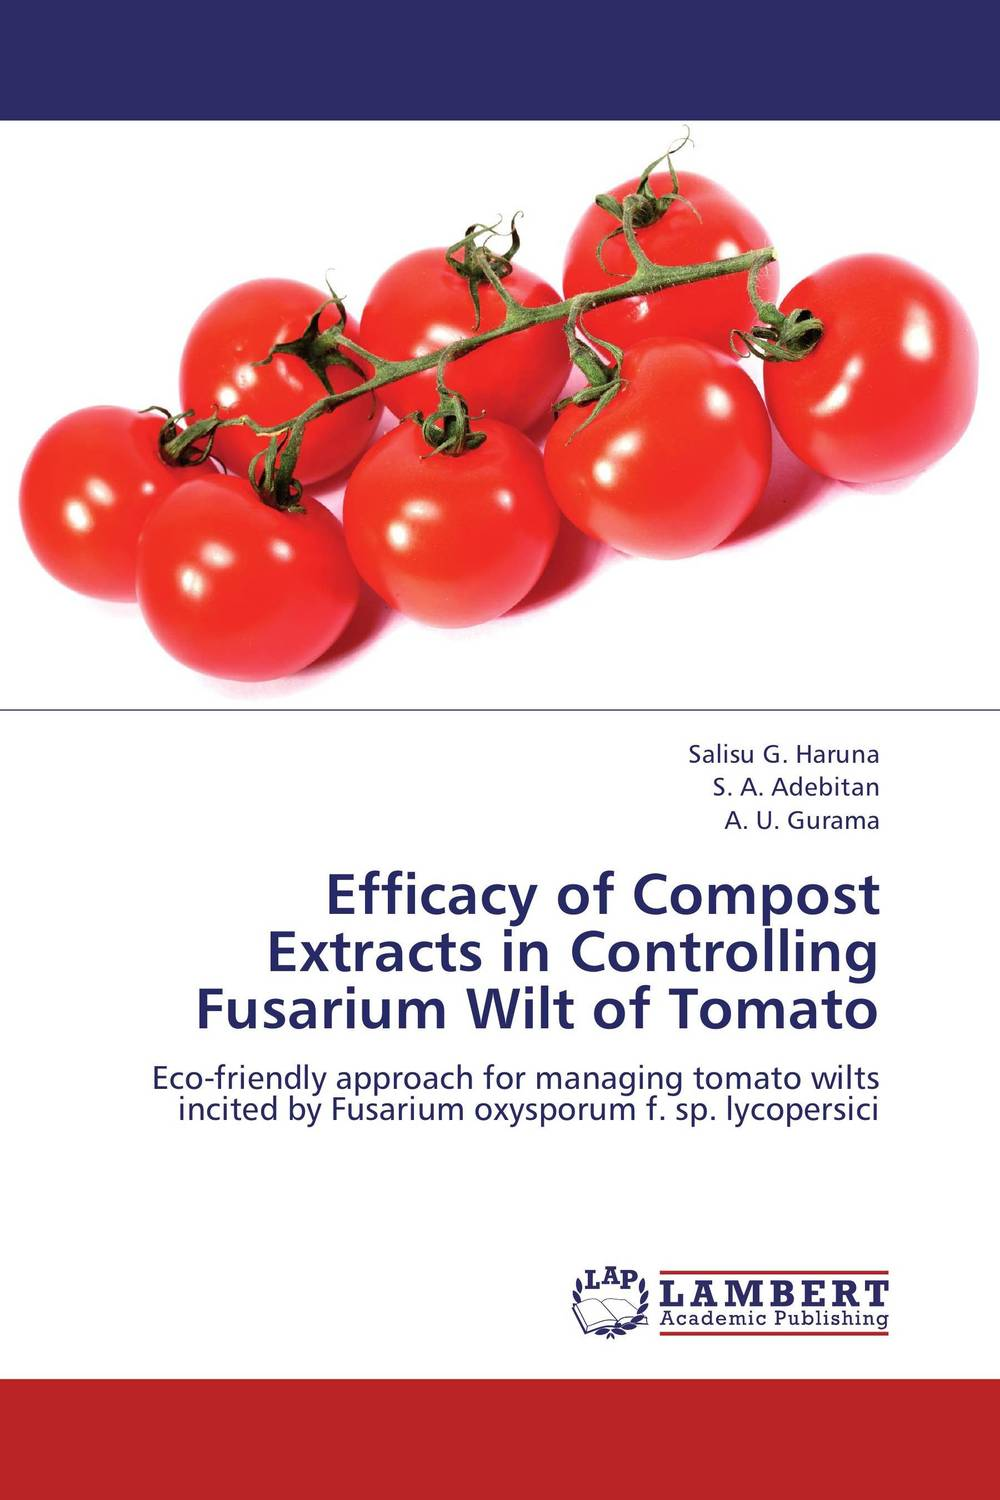 Efficacy of Compost Extracts in Controlling Fusarium Wilt of Tomato functional capacity of mango leave extracts